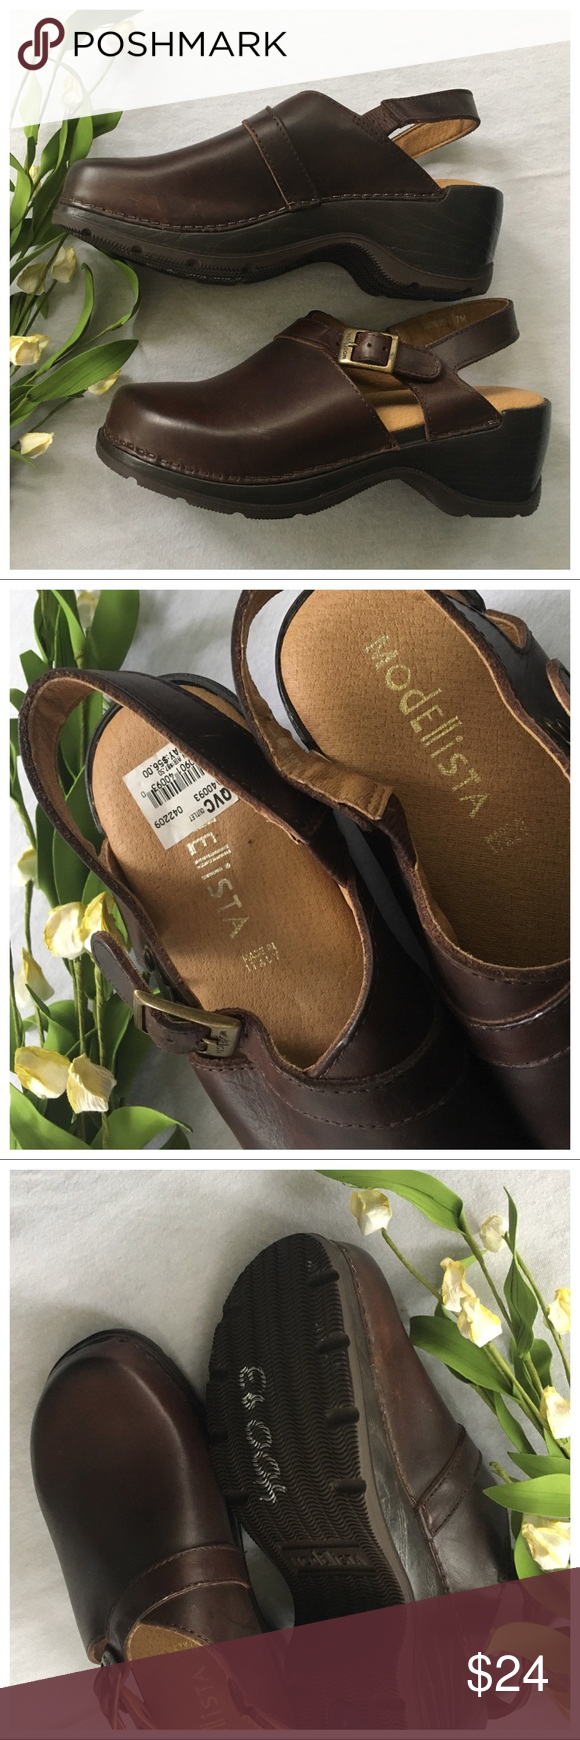 67d438beb4f9 modellista clogs 40093 NEW size 7 Brown Gorgeous Clogs by Modellista. NWT  from QVC outlet. Size 7 in Great condition. Only notable flaw a is on the  front ...